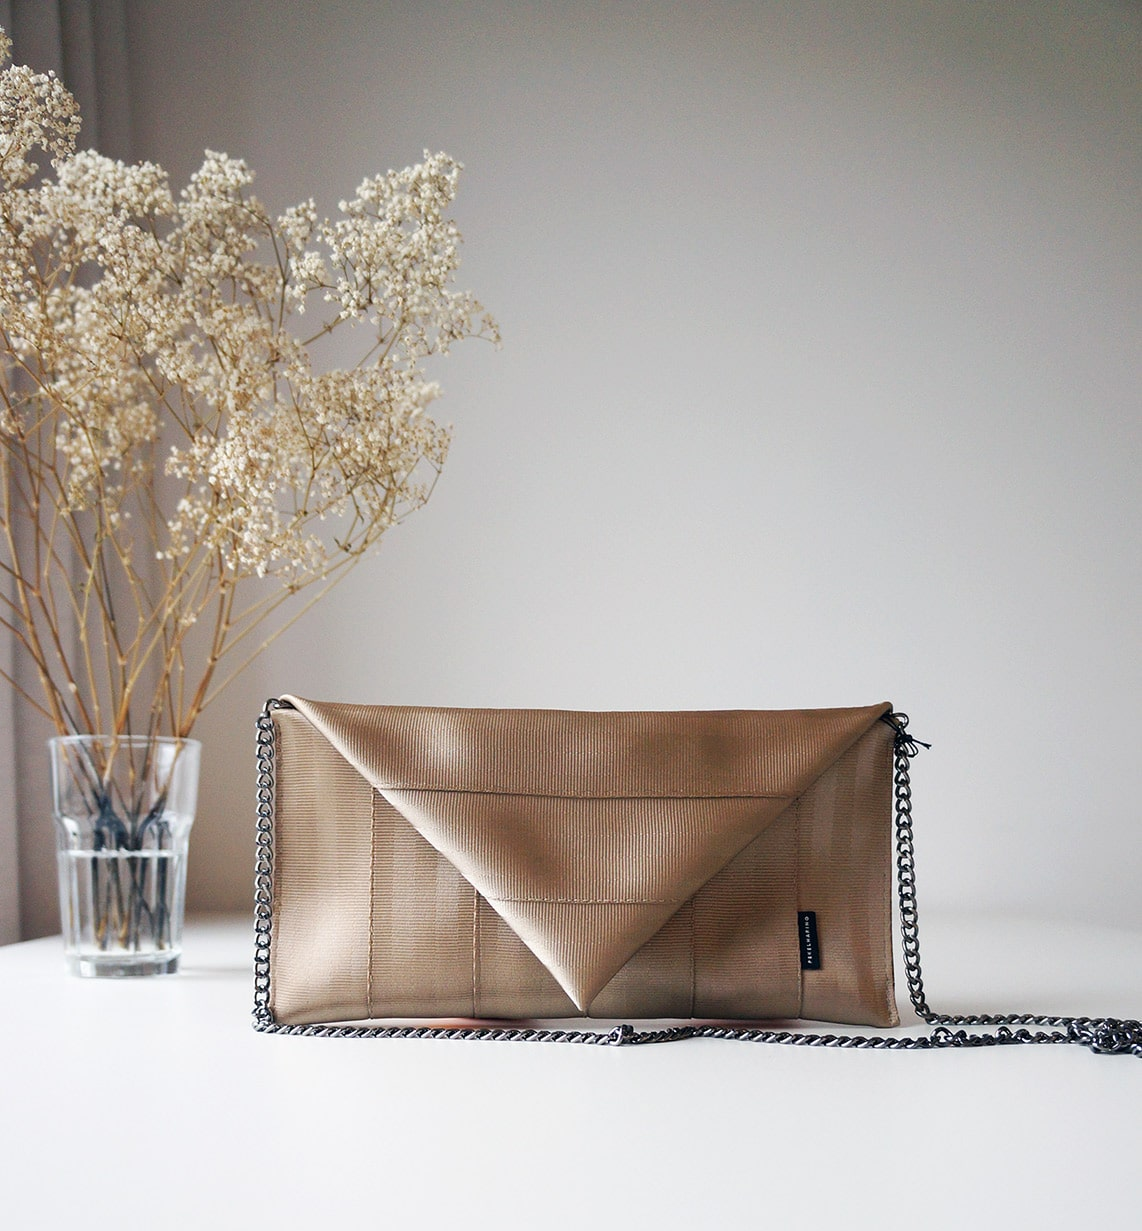 My favourite sustainable gifts for Christmas 2017: the gold clutch by Pekelharing